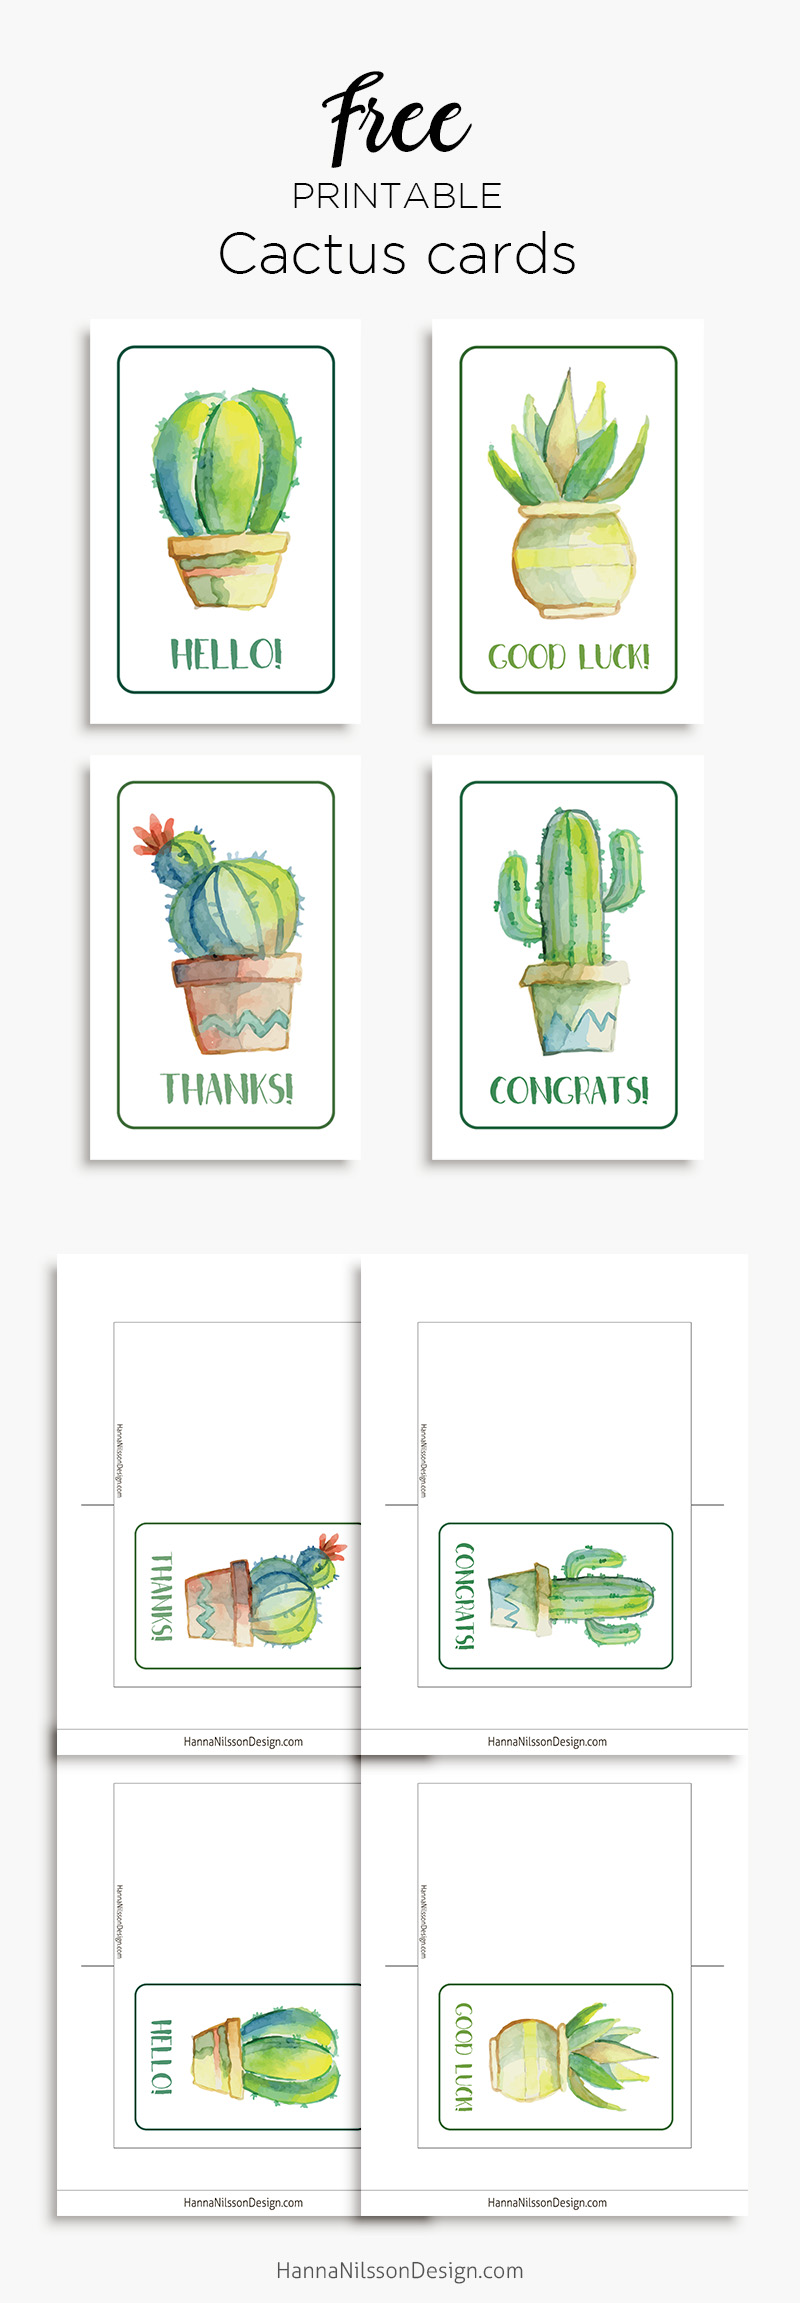 image about Printable Good Luck Cards referred to as Printable cactus playing cards Very good luck! Hi there! Due! Congrats